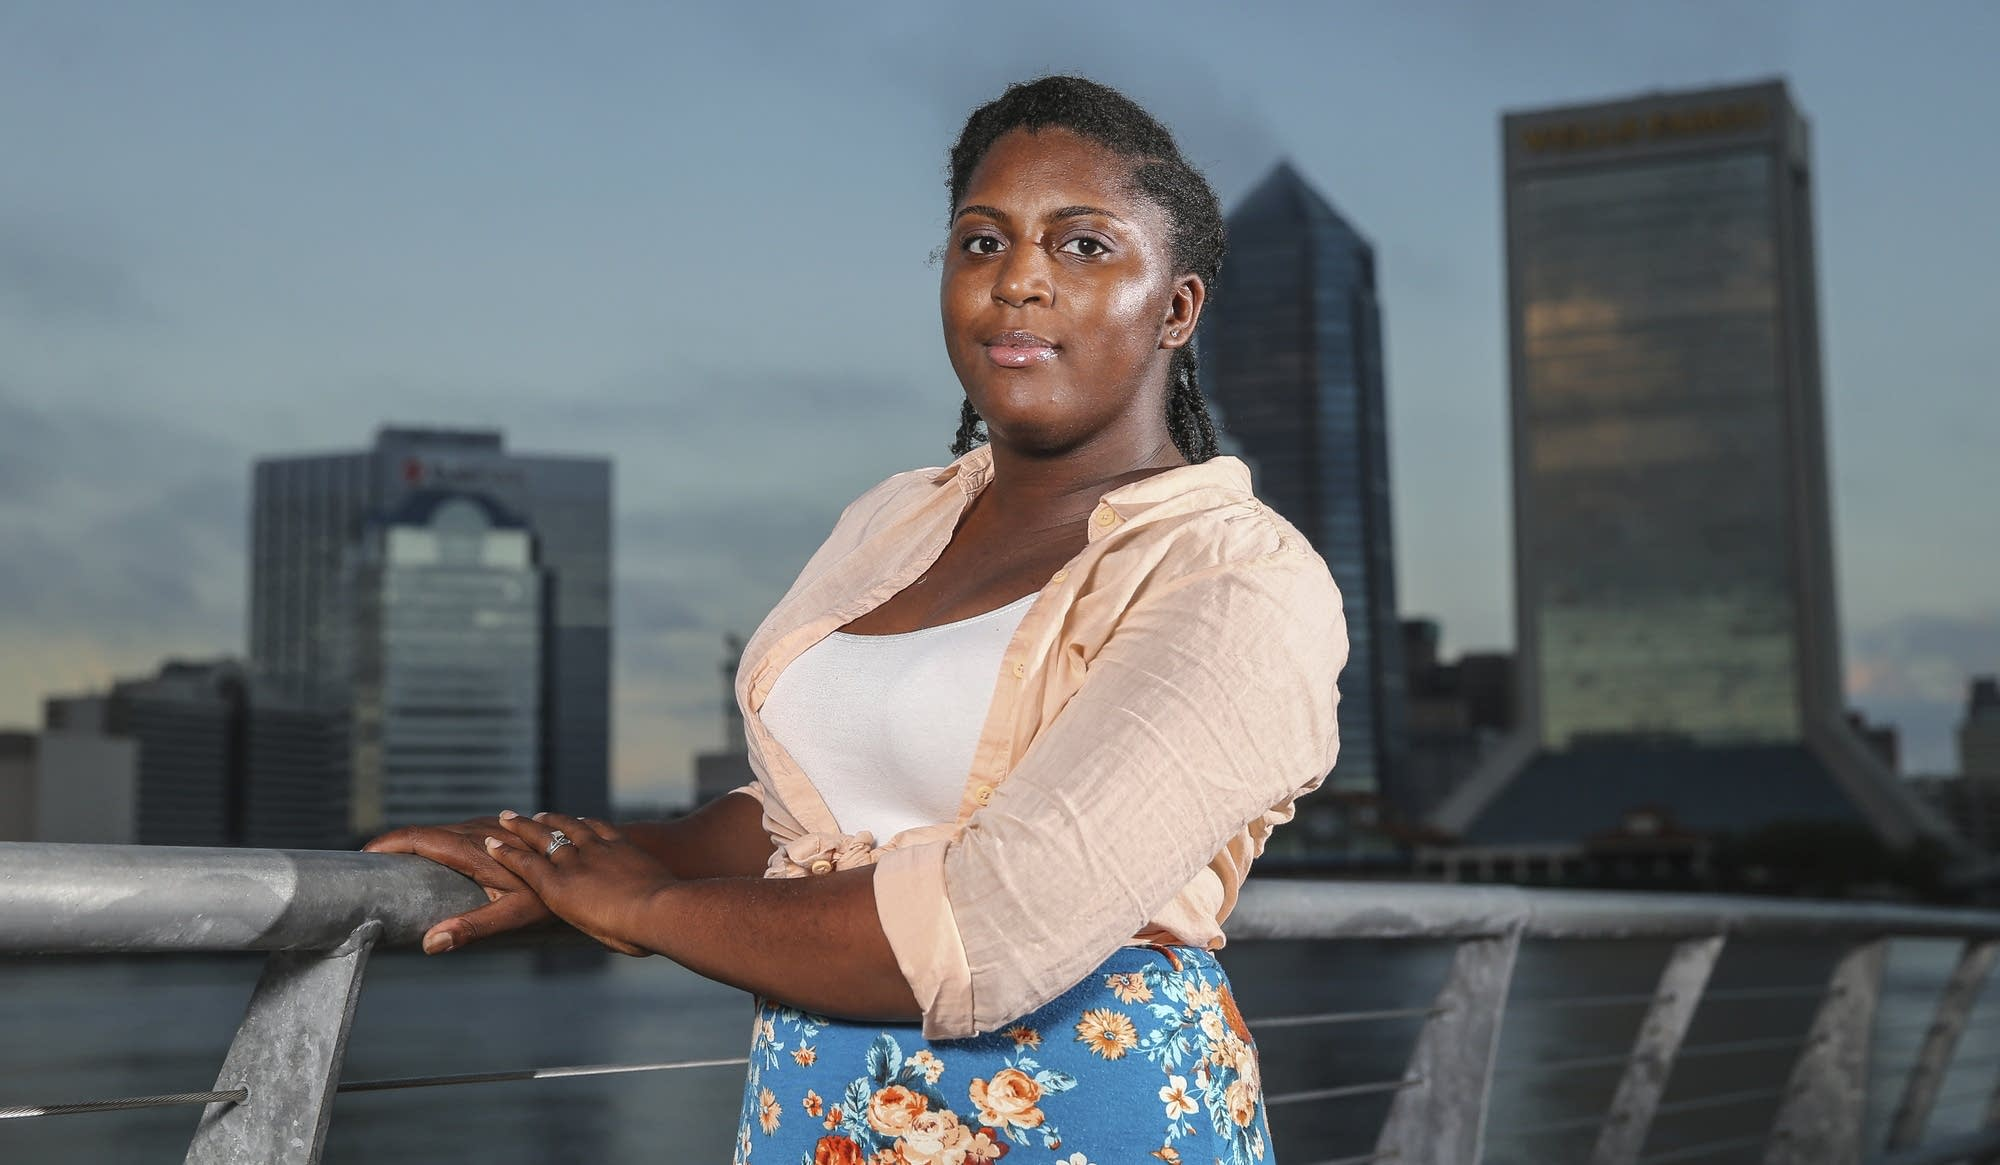 pay gap between college grads and everyone else at a record asia howard of jacksonville fla was stuck in mostly retail and fast food jobs after graduating high school after further developing her career and